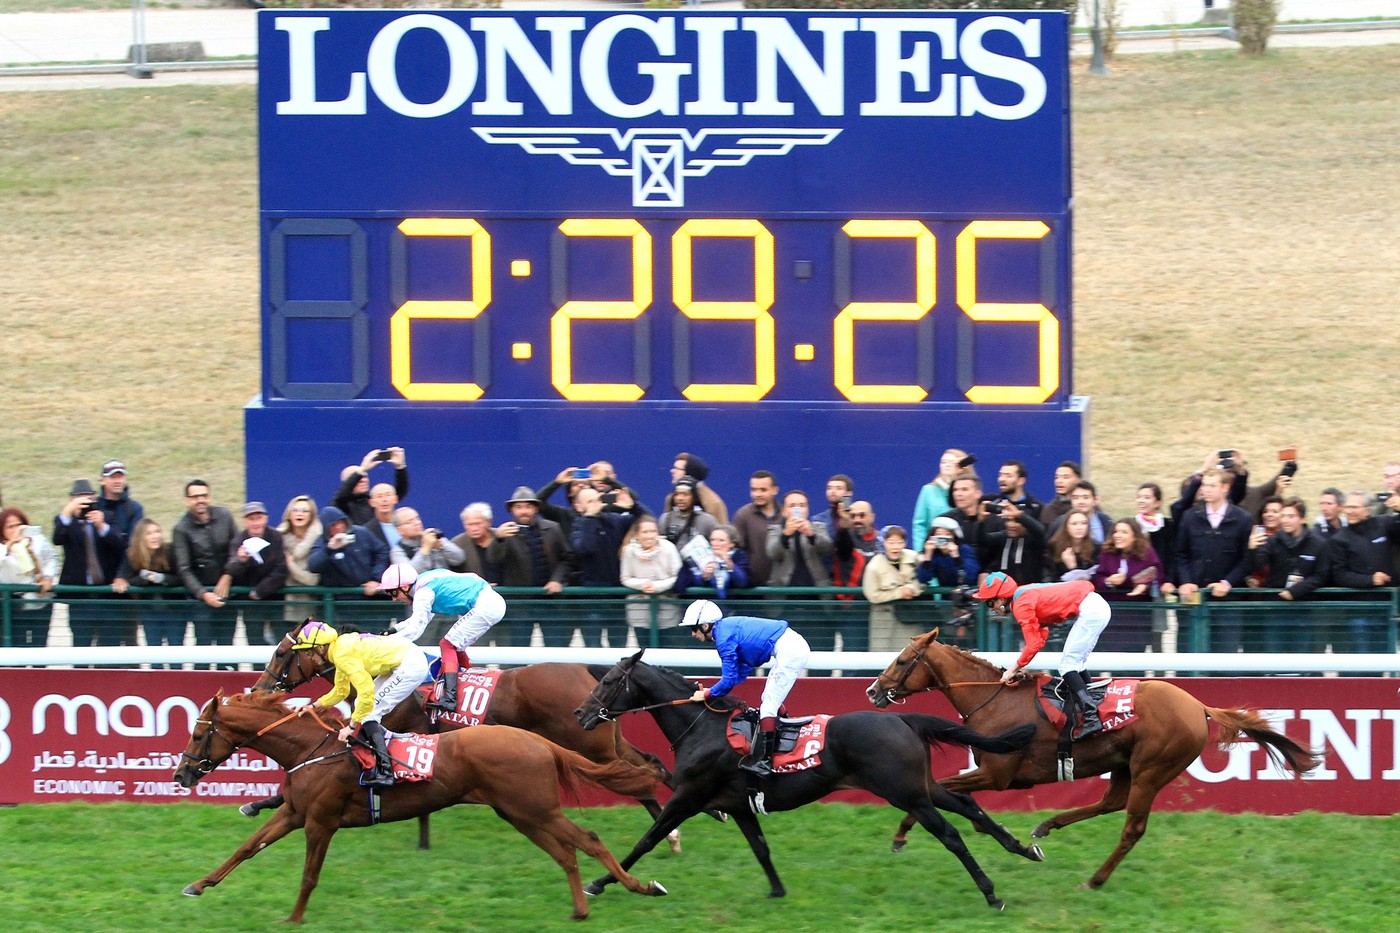 Longines Flat Racing Event: Frankie Dettori Crowned the 2018 Longines World's Best Jockey  1